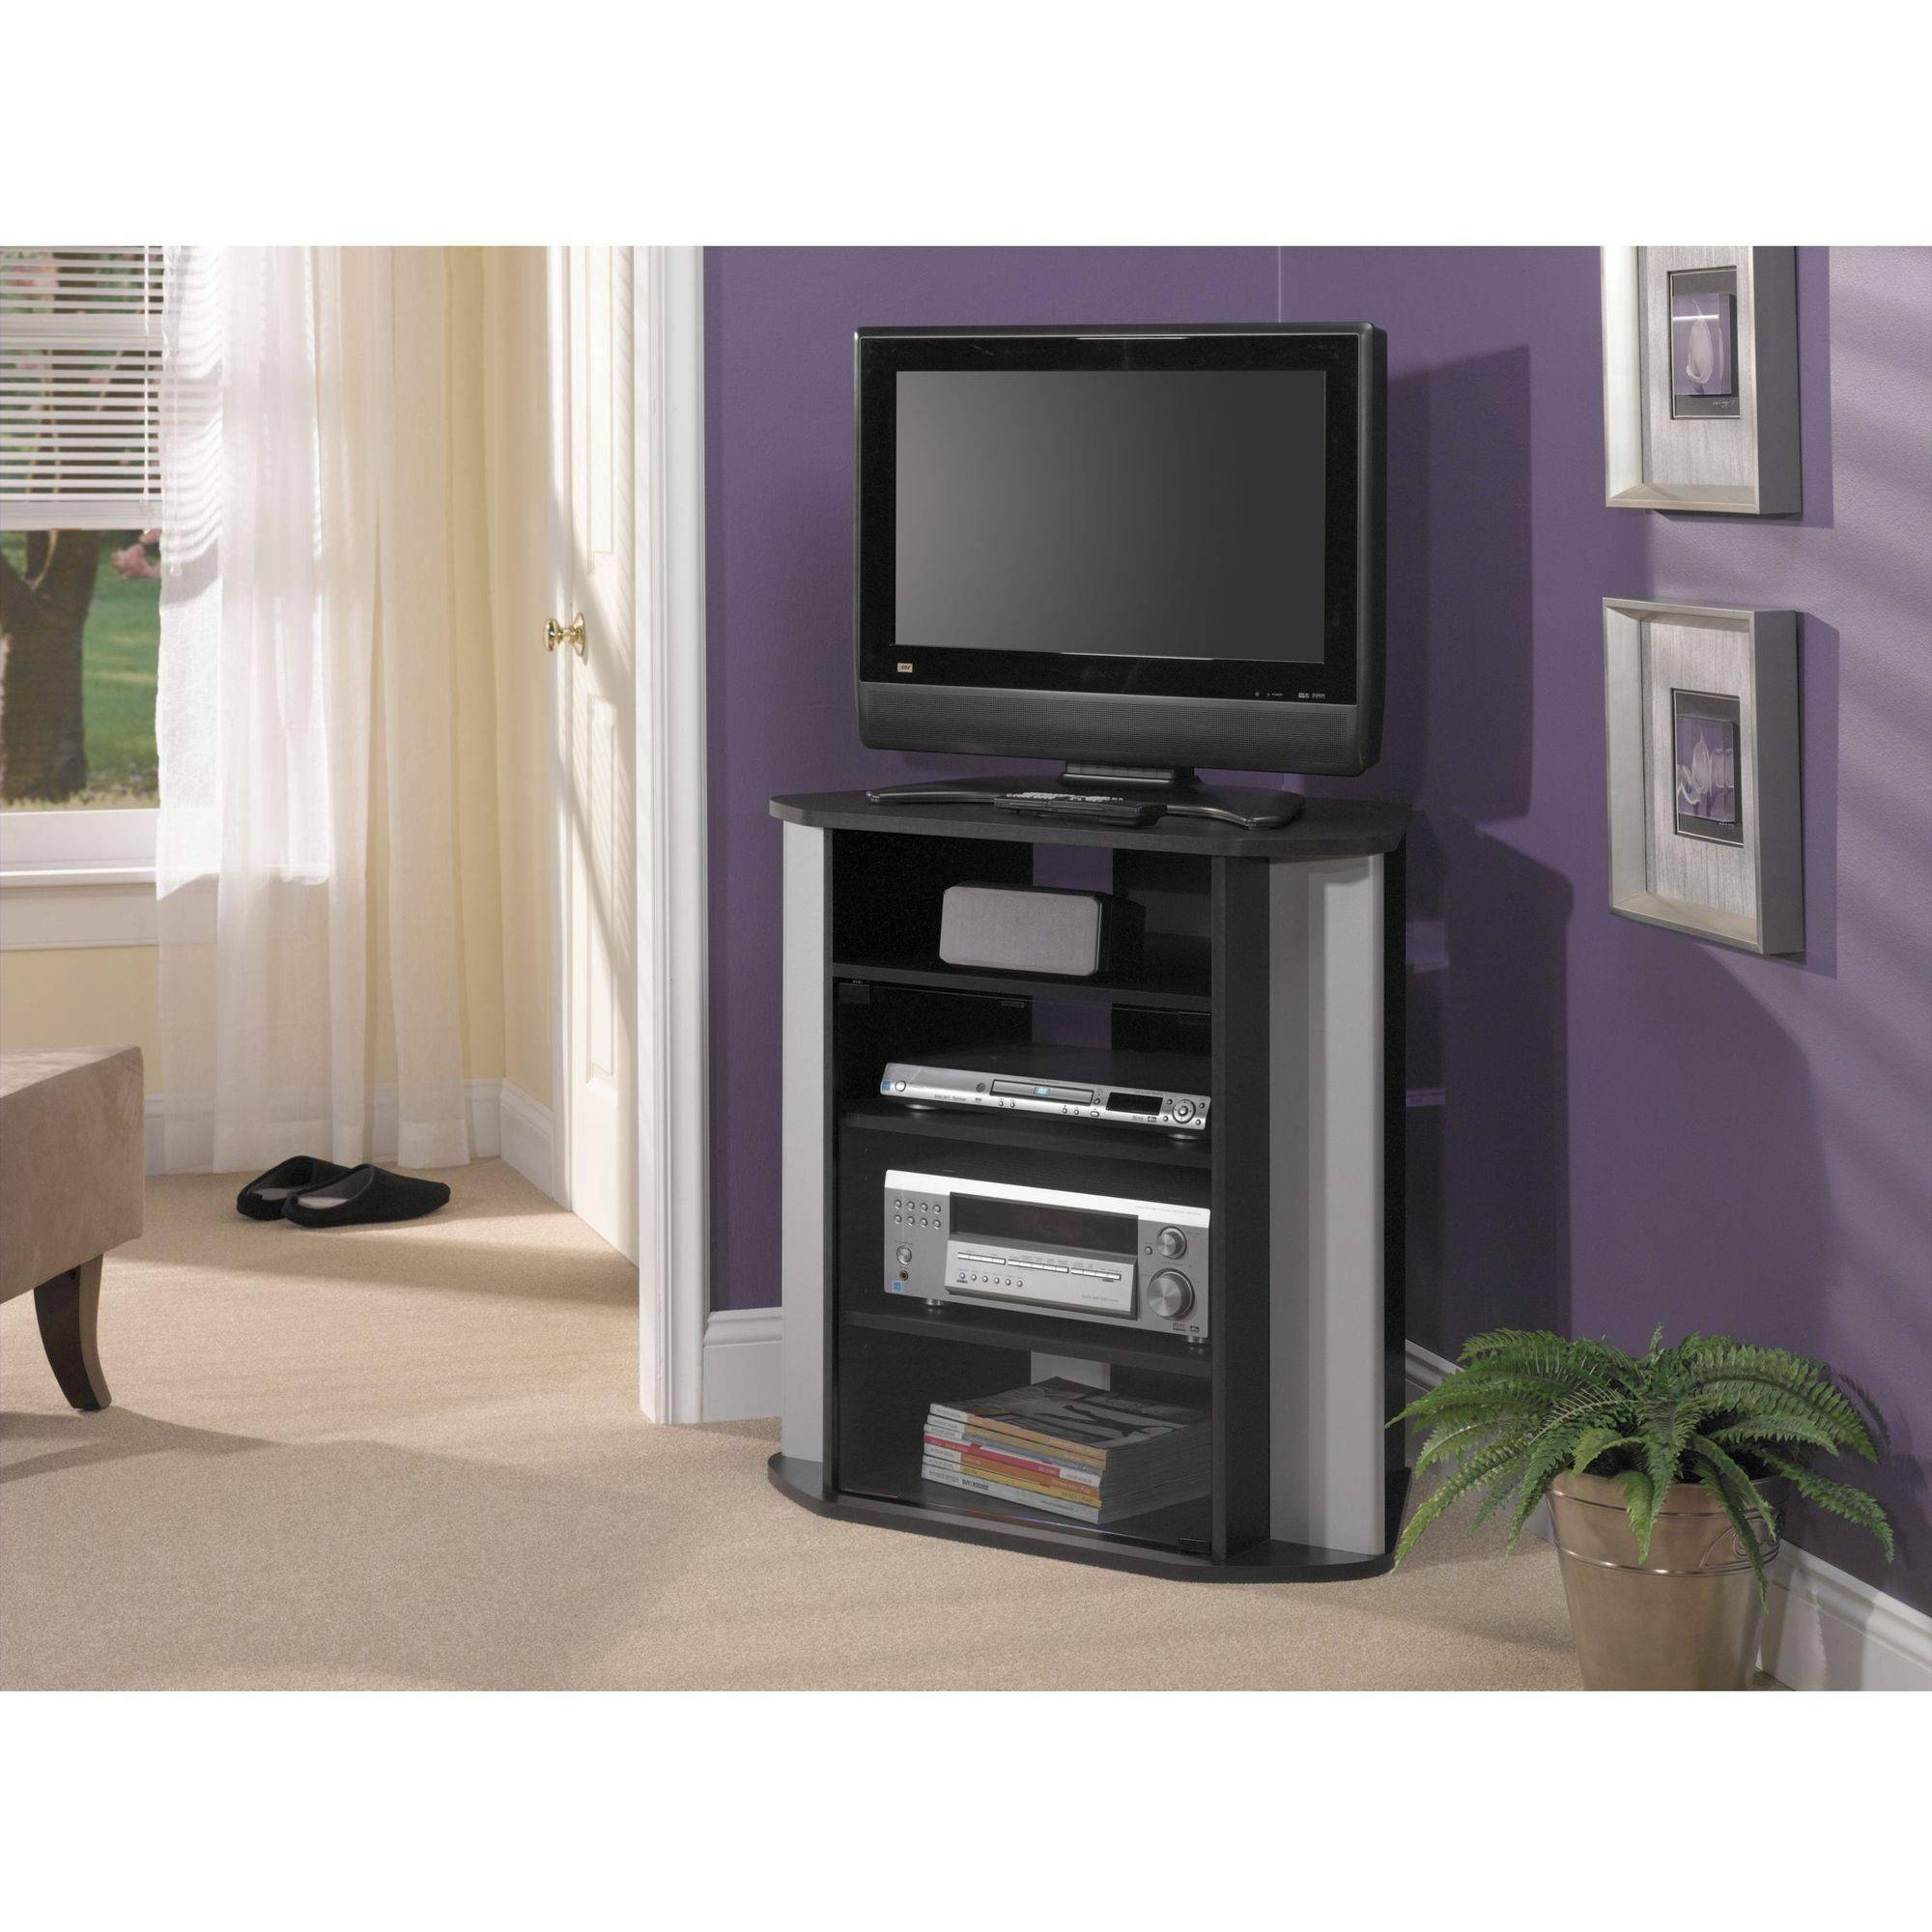 Tall Bedroom Tv Stand To Complete Your Room Decor Best Ideas for Tall Black Tv Cabinets (Image 11 of 15)